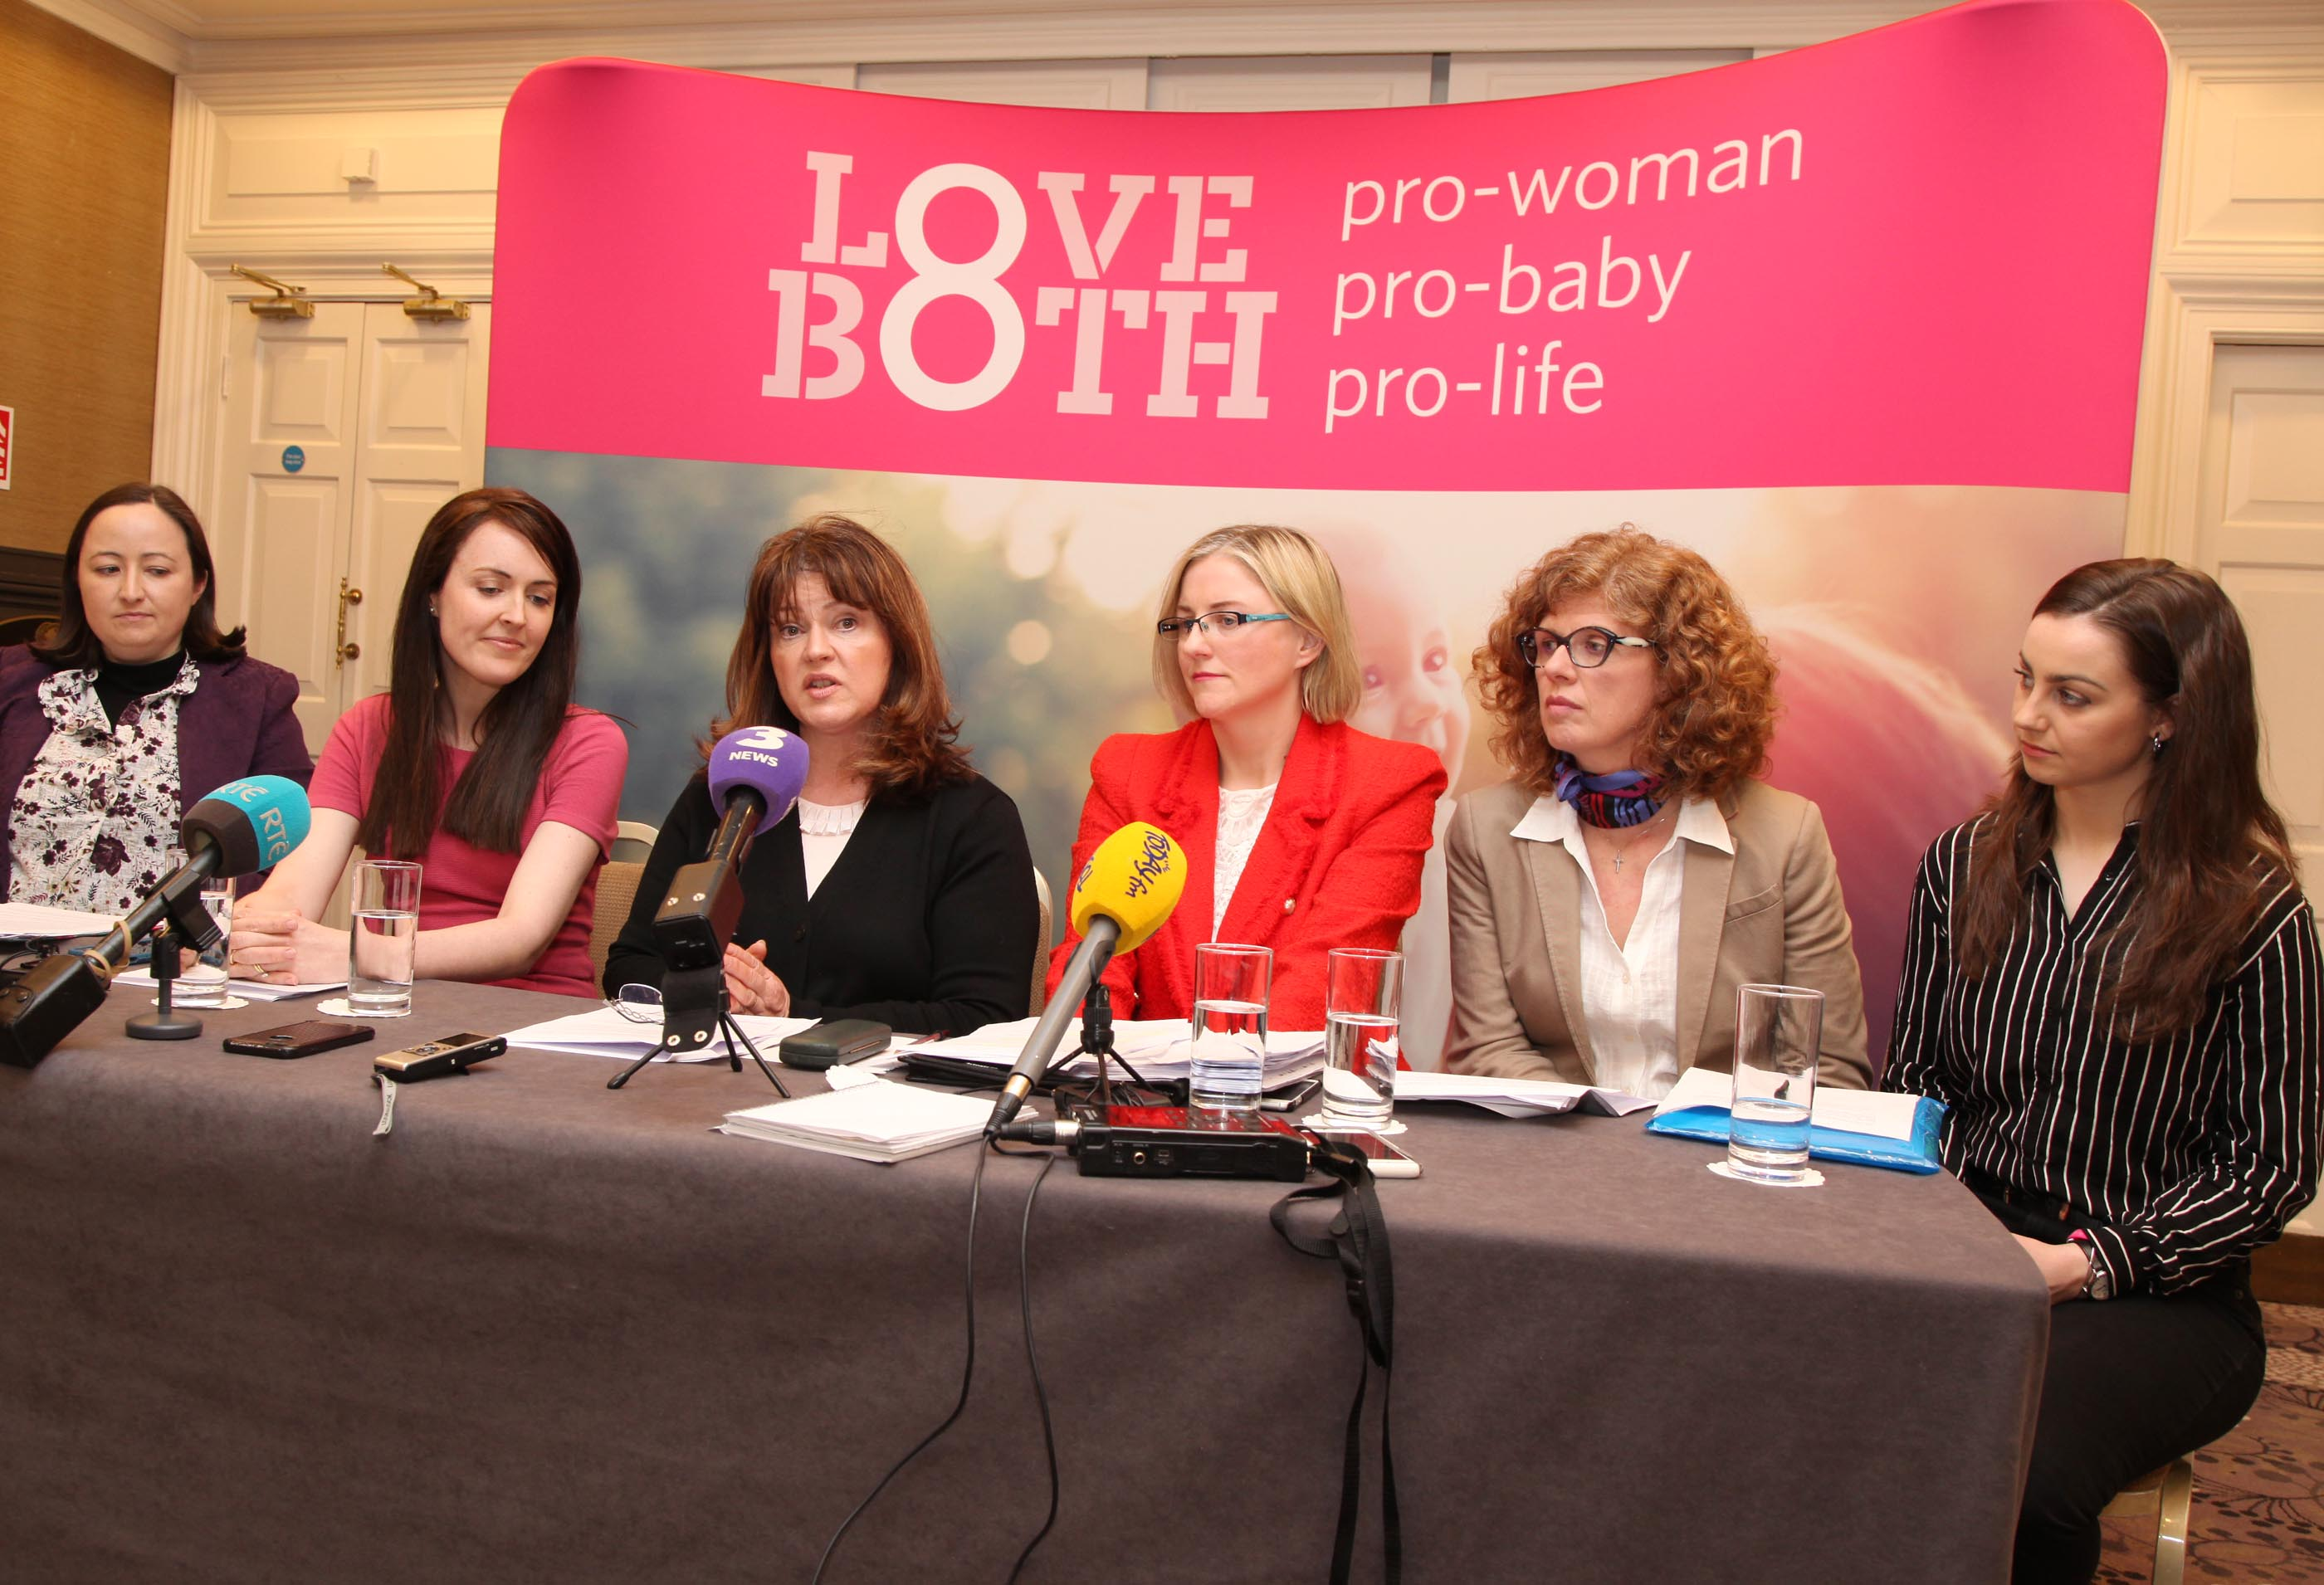 08.03.2018: A vote for repeal is a vote for abortion on demand up to birth – Caroline Simons